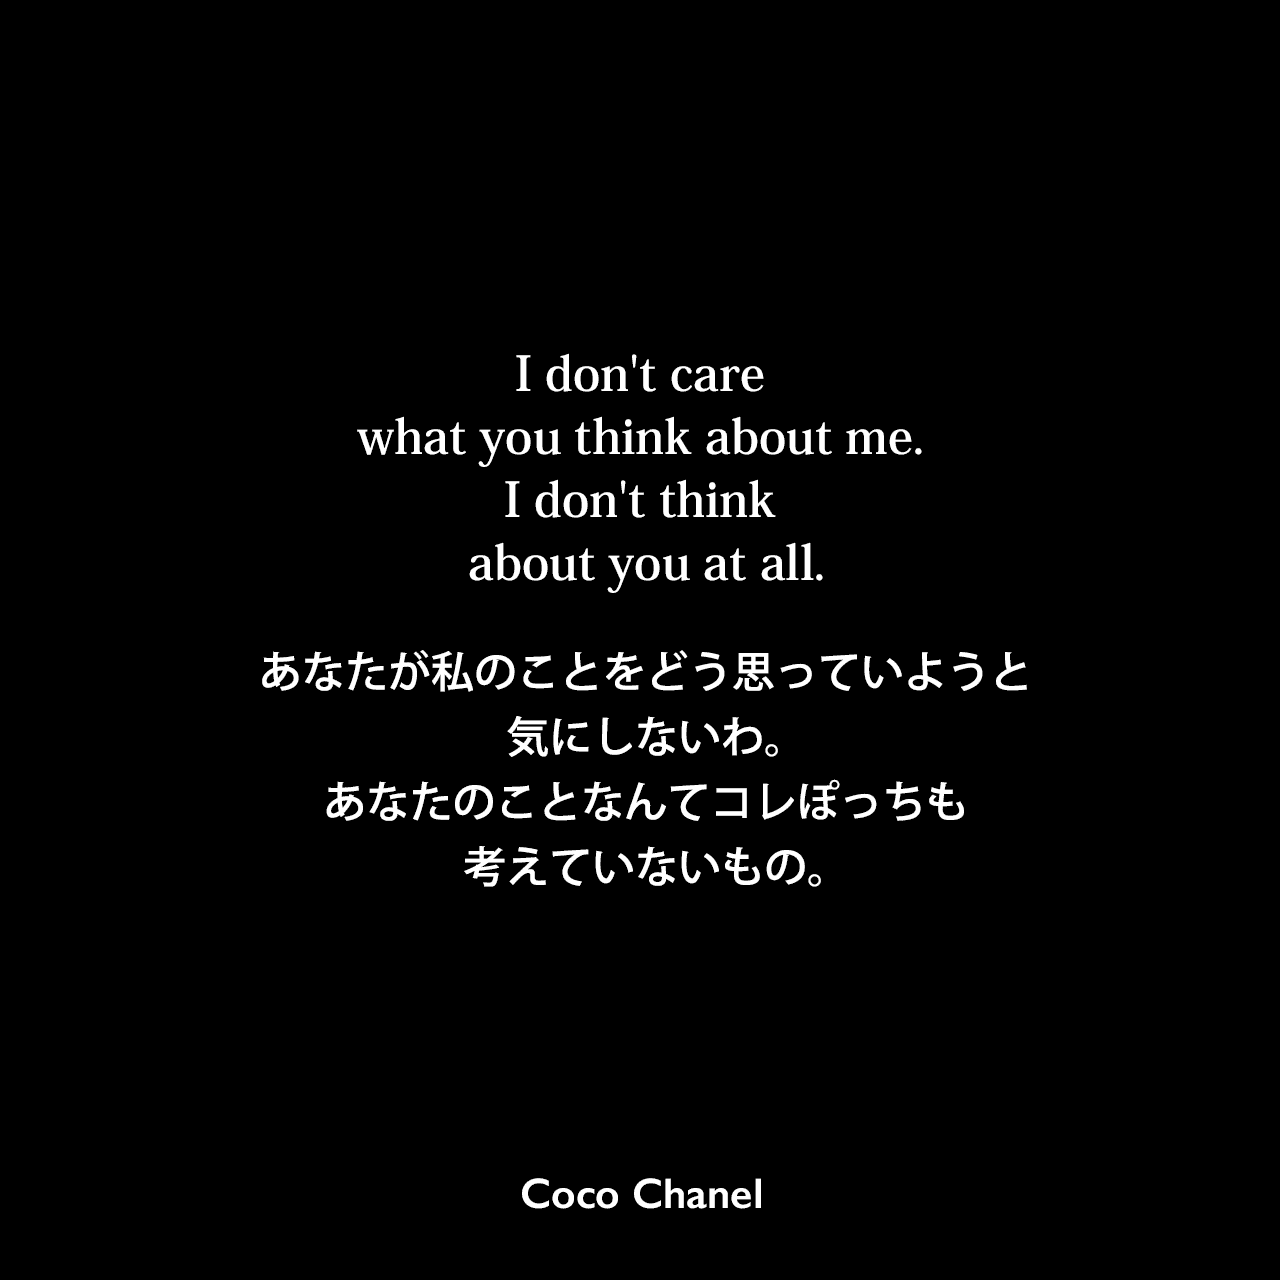 I don't care what you think about me. I don't think about you at all.あなたが私のことをどう思っていようと気にしないわ。あなたのことなんてコレぽっちも考えていないもの。Coco Chanel